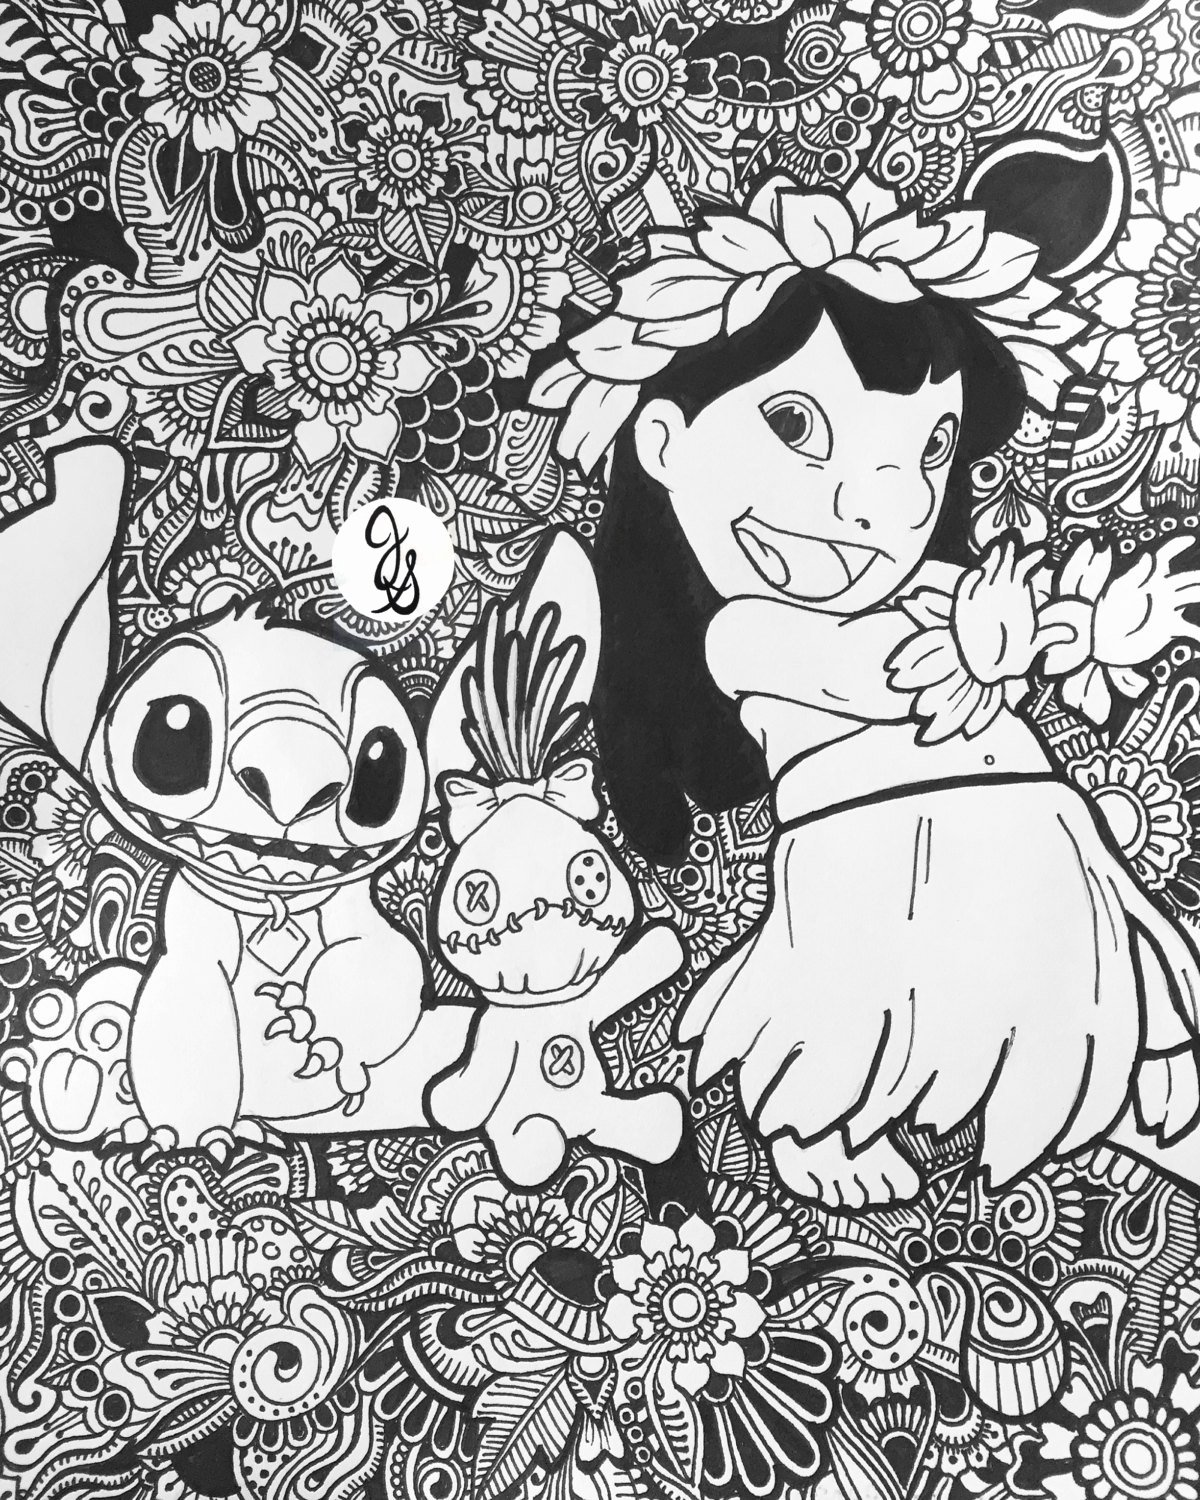 coloring pages to color online adult disney coloring books adultcoloringbookz color coloring pages online to